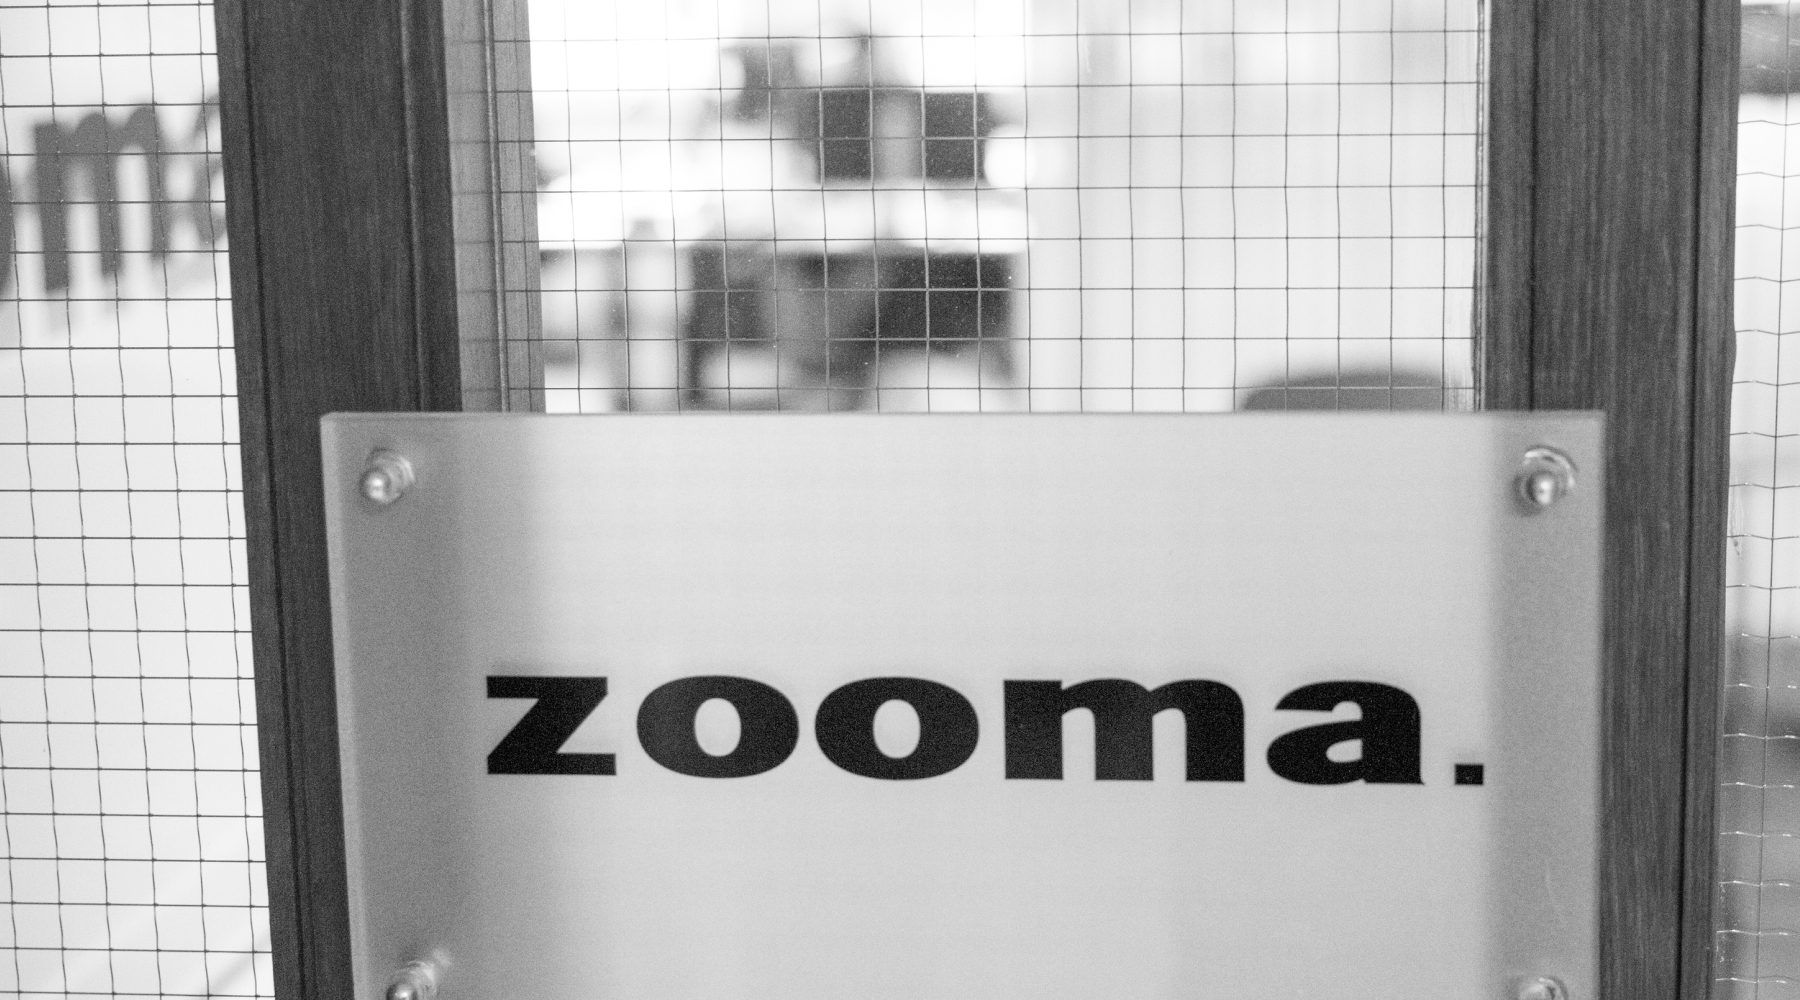 About the application to establish a partnership with Zooma